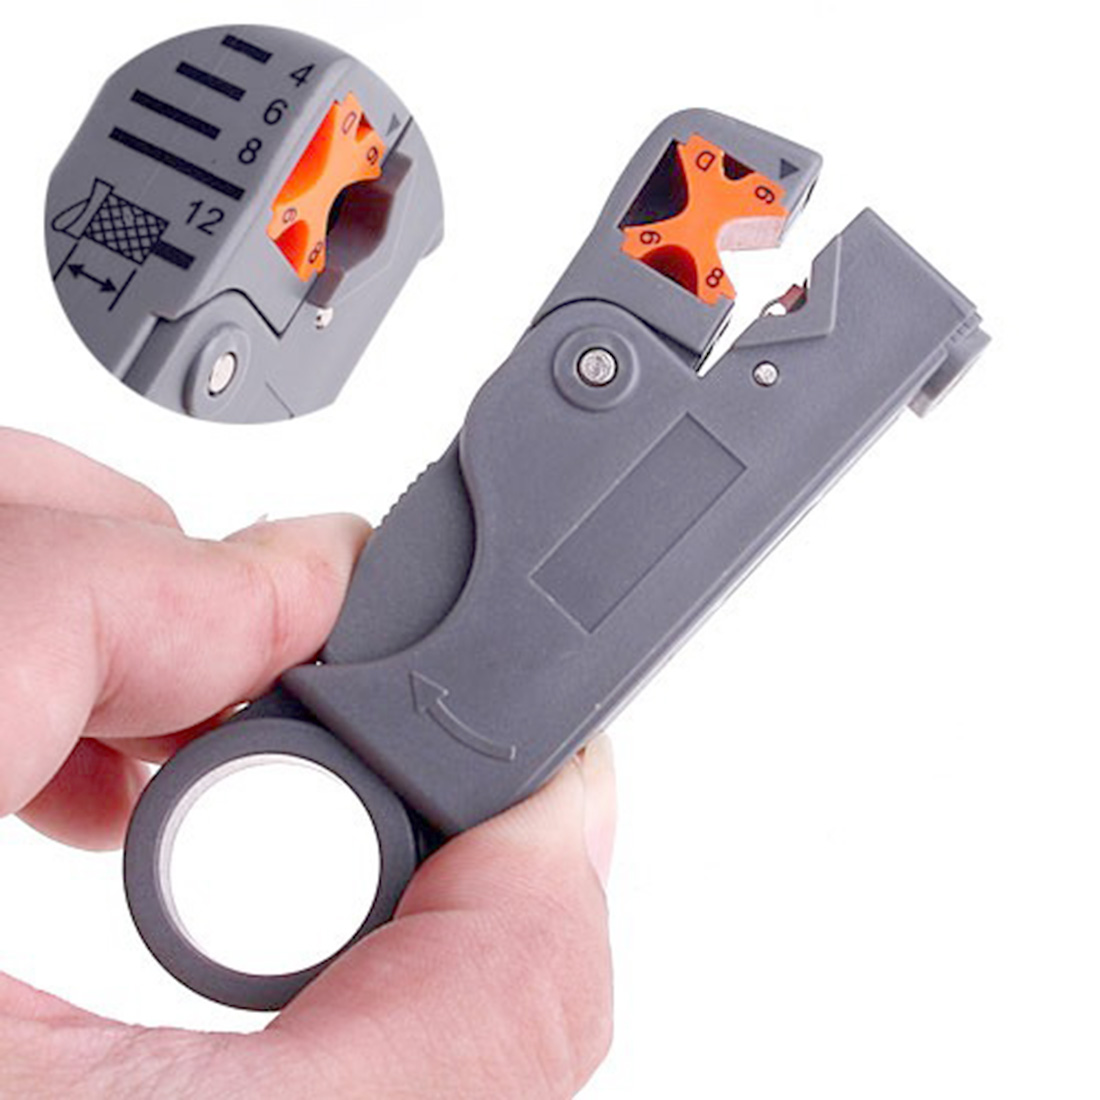 Etmakit Brand New Rotary Coaxial Cable Wire Stripping Stripper Cutter Stripper Network Tools